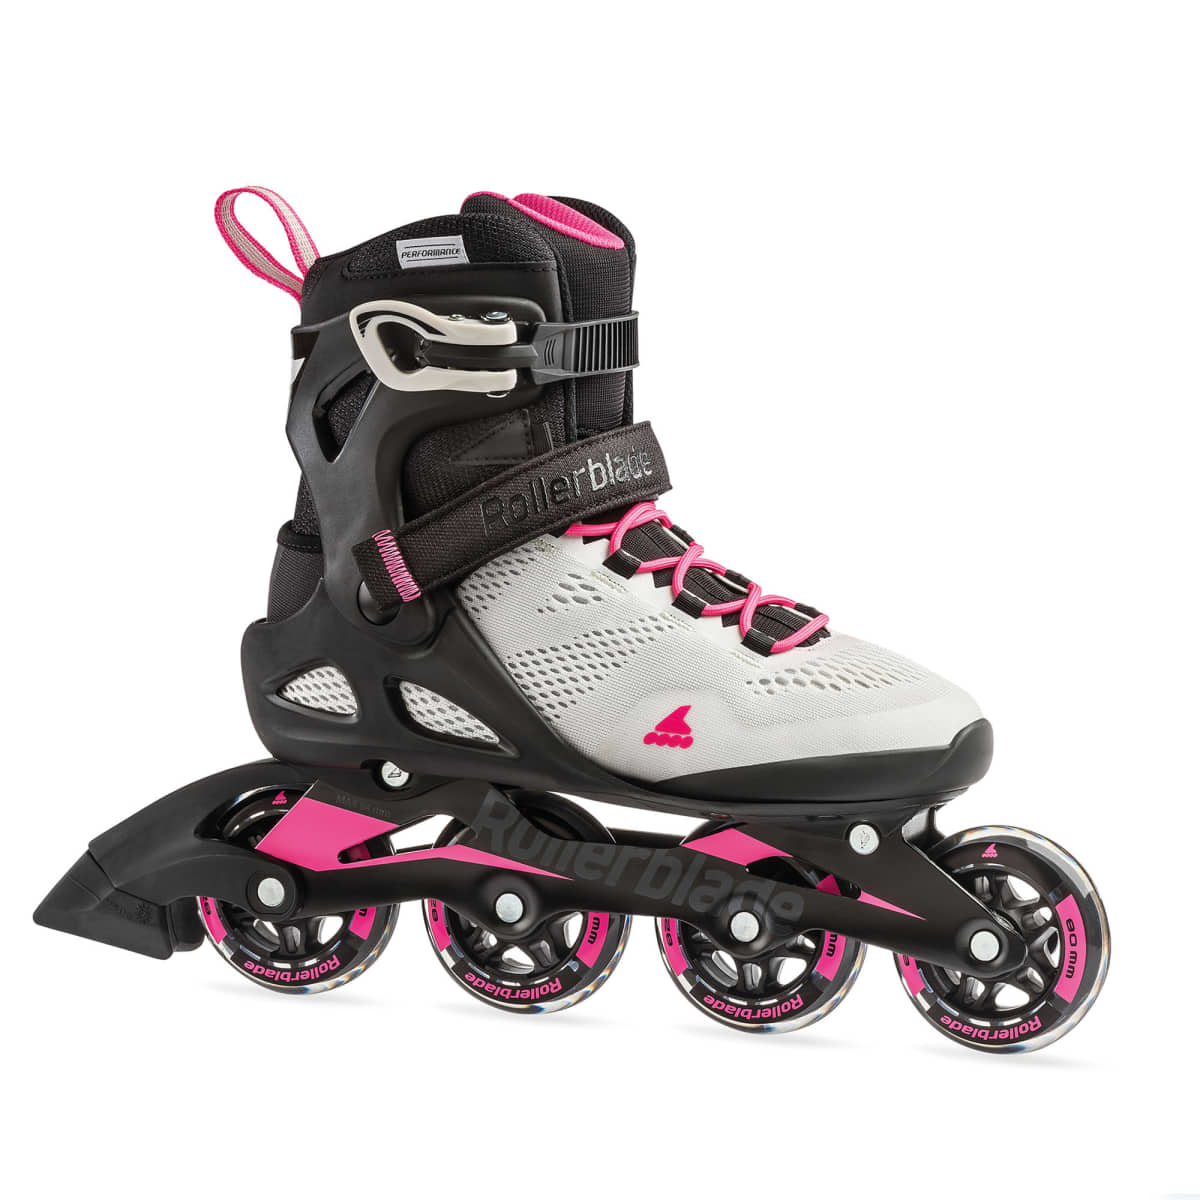 Macroblade 80 W Cool Grey Candy Pink - Recreatie Fitness Skates